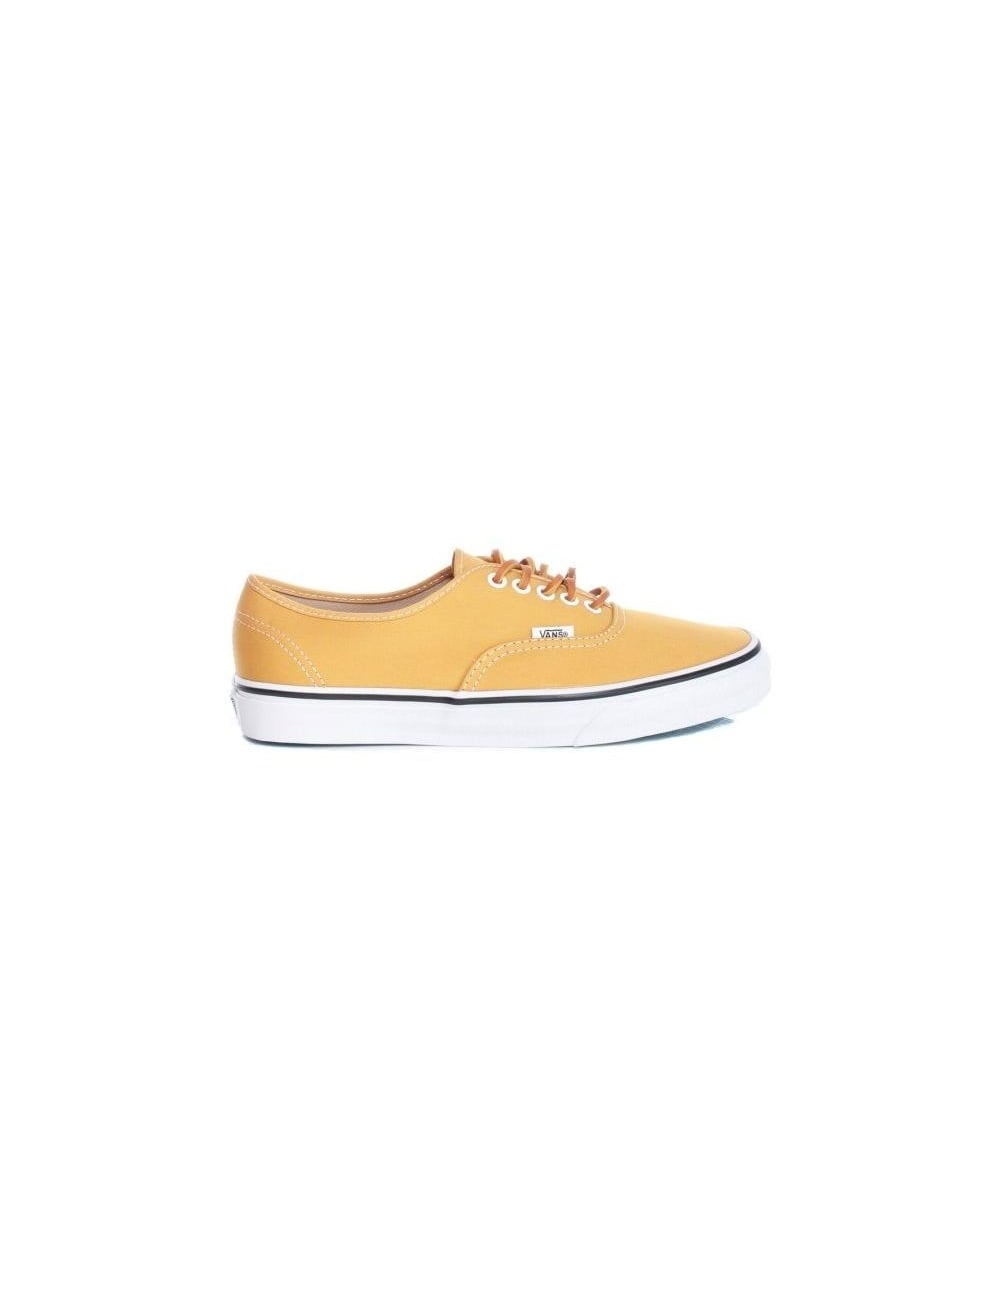 Vans Classics Authentic - Mineral Yellow (Brushed Twill) - Footwear ... eb166c27a